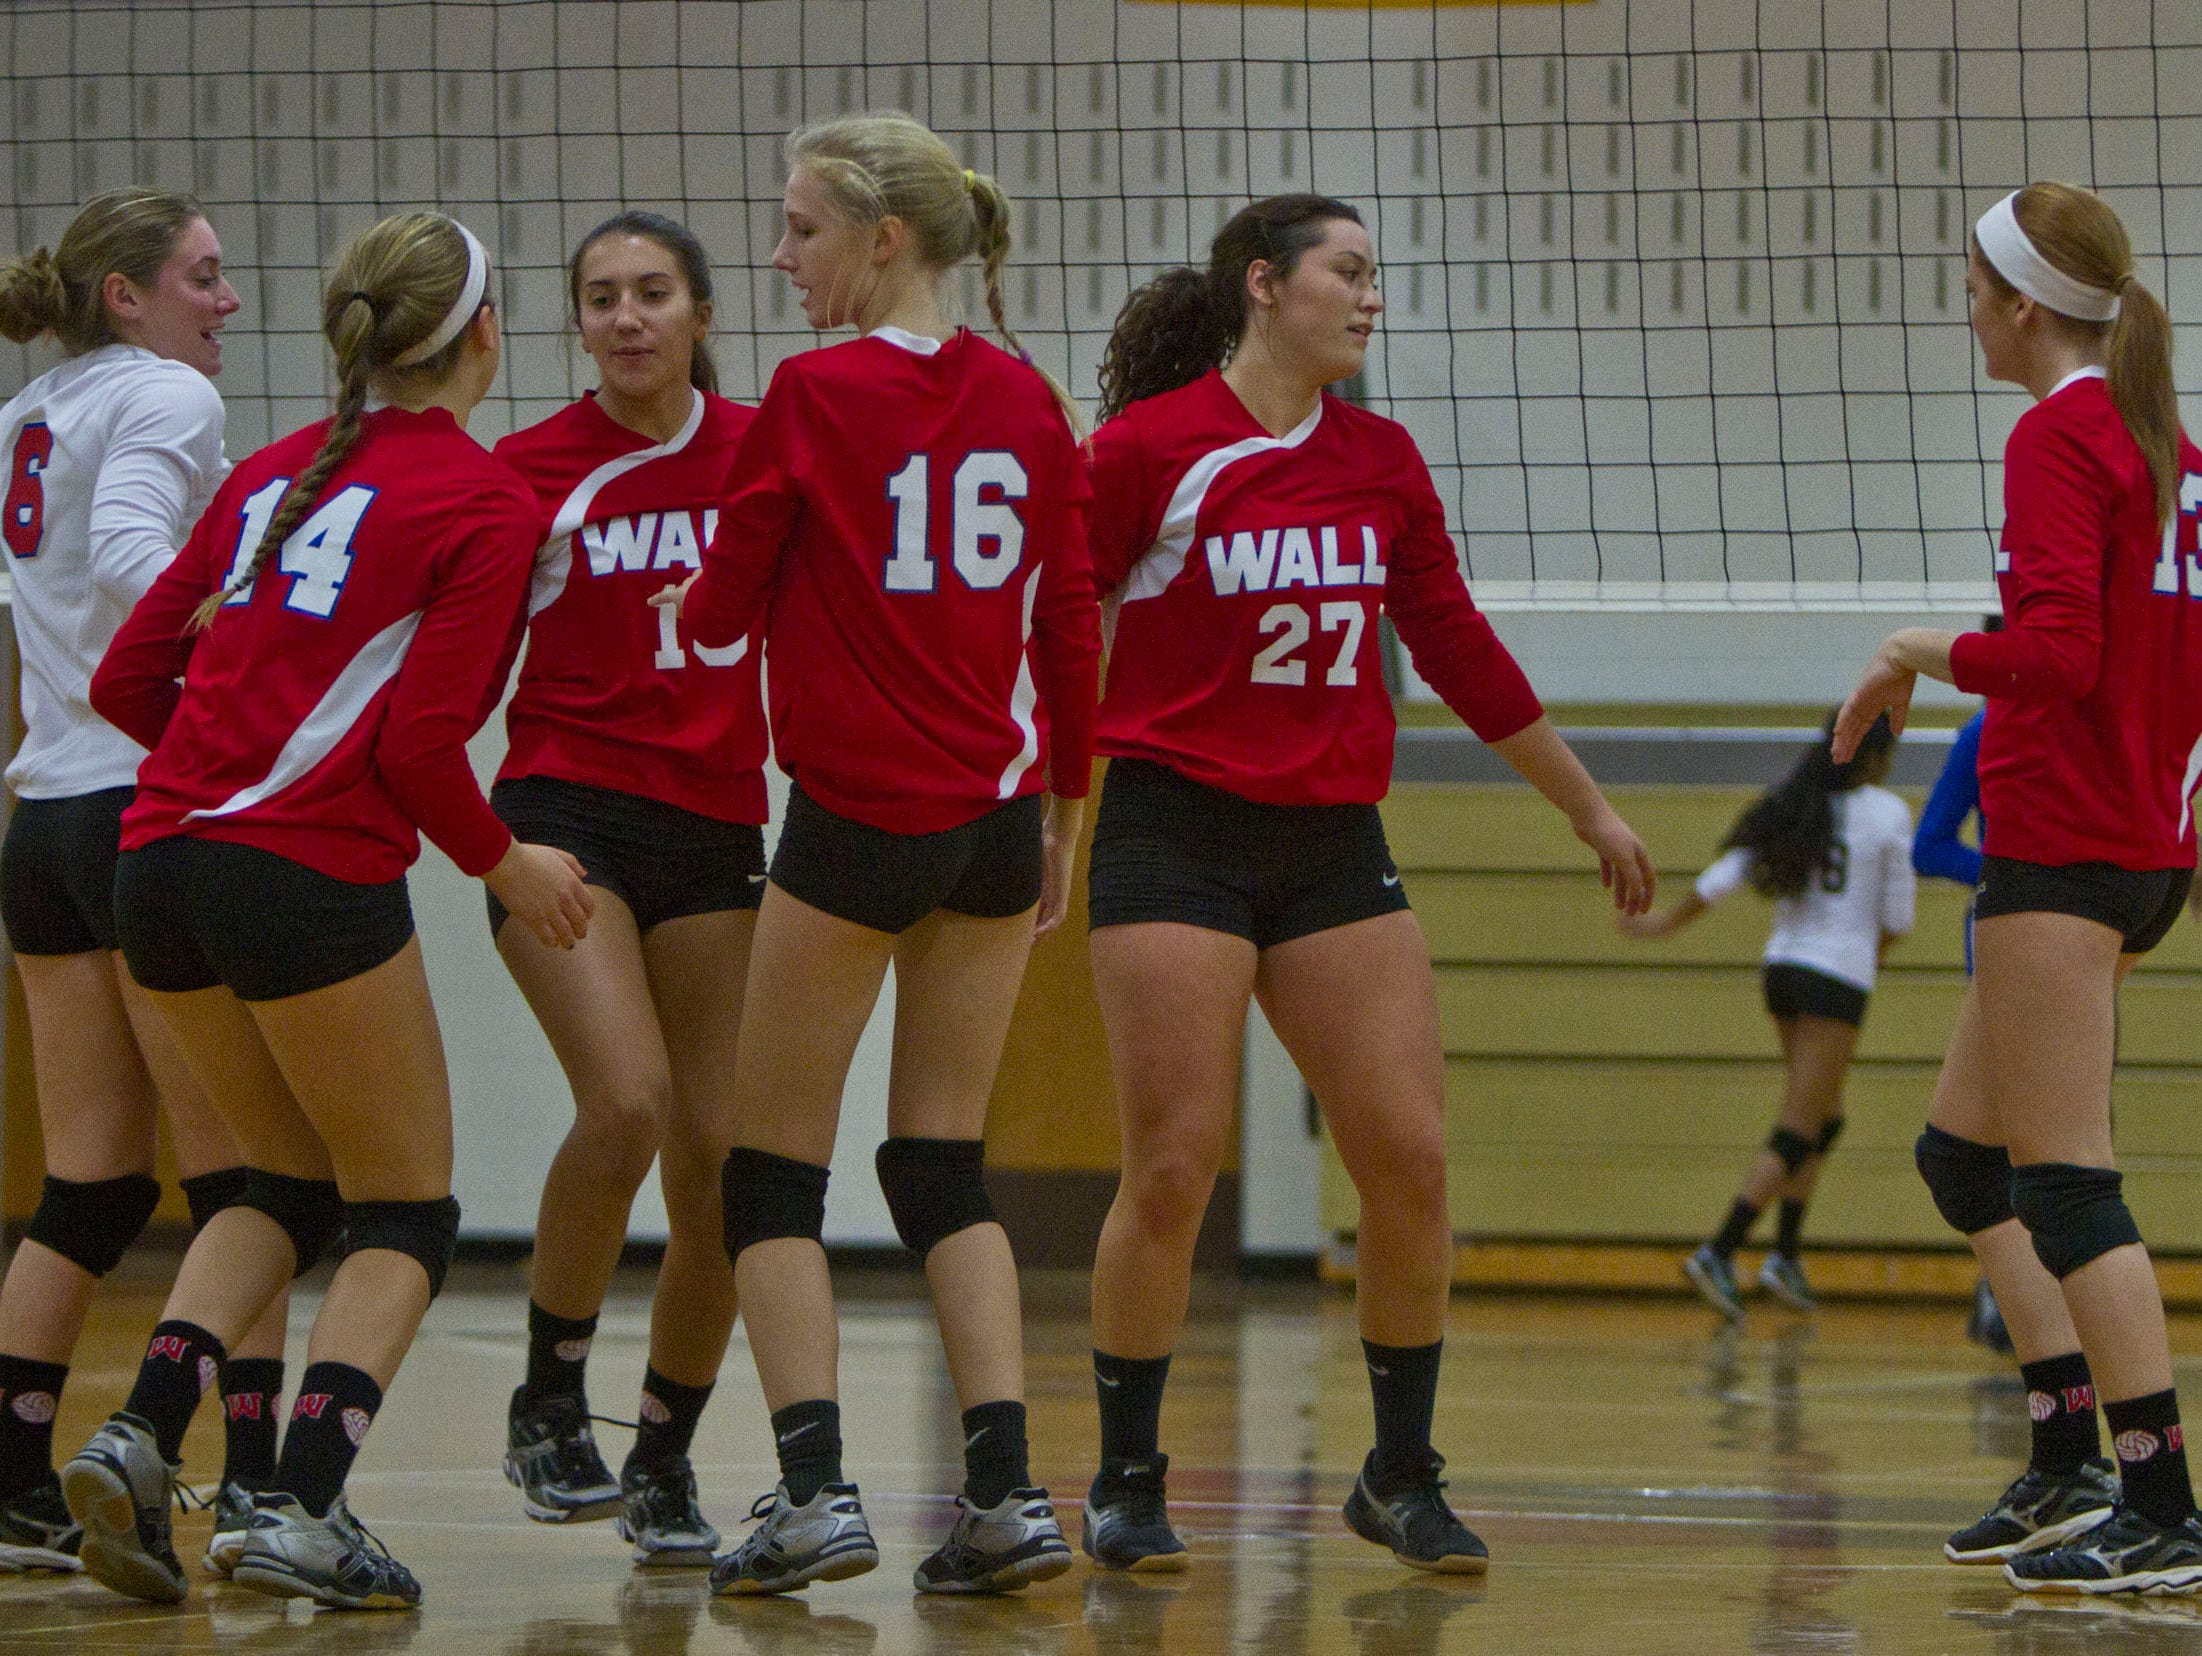 NJSIAA volleyball match between Wall and West Windsor Plainsboro North. Wall Township, NJ Wednesday, November 4, 2015 @dhoodhood